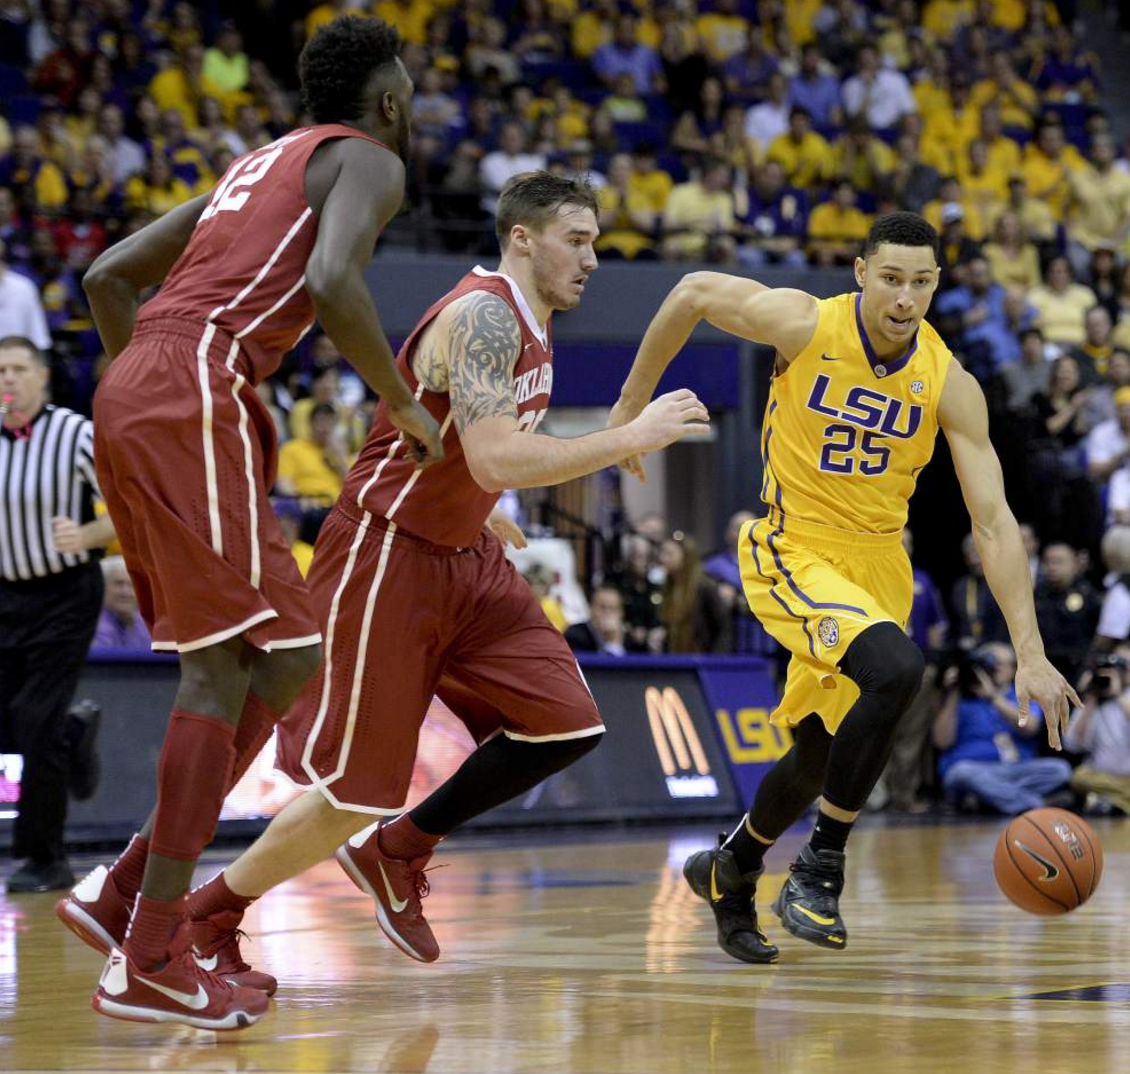 LSU falls 75-77 to No. 1 Oklahoma in heartbreaking fashion